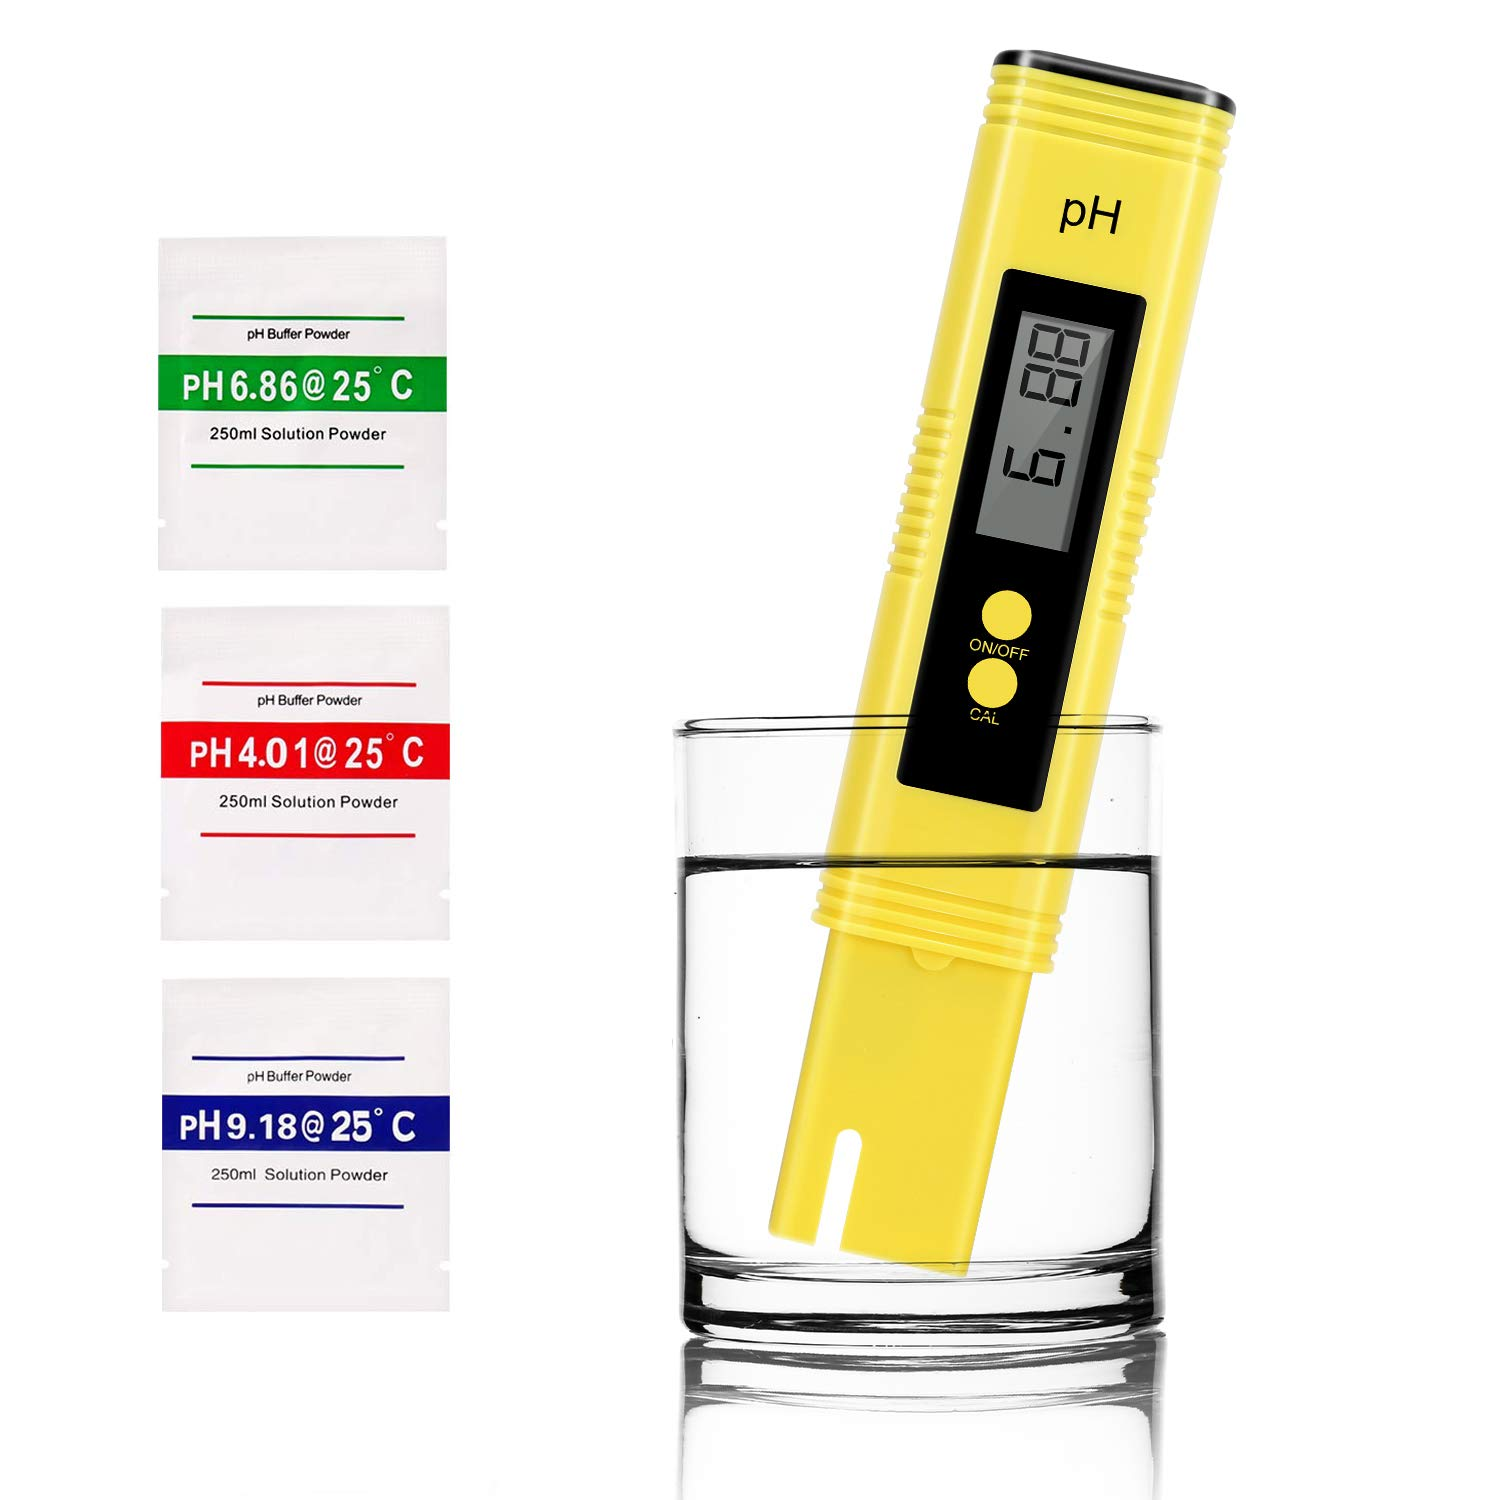 Digital PH Meter, UOTO Water Quality Tester 0.01 PH High Accuracy and 0-14 PH Measurement Range, Ideal Water Test Meter for Household Drinking Water, Aquariums, ATC - Yellow by UOTO